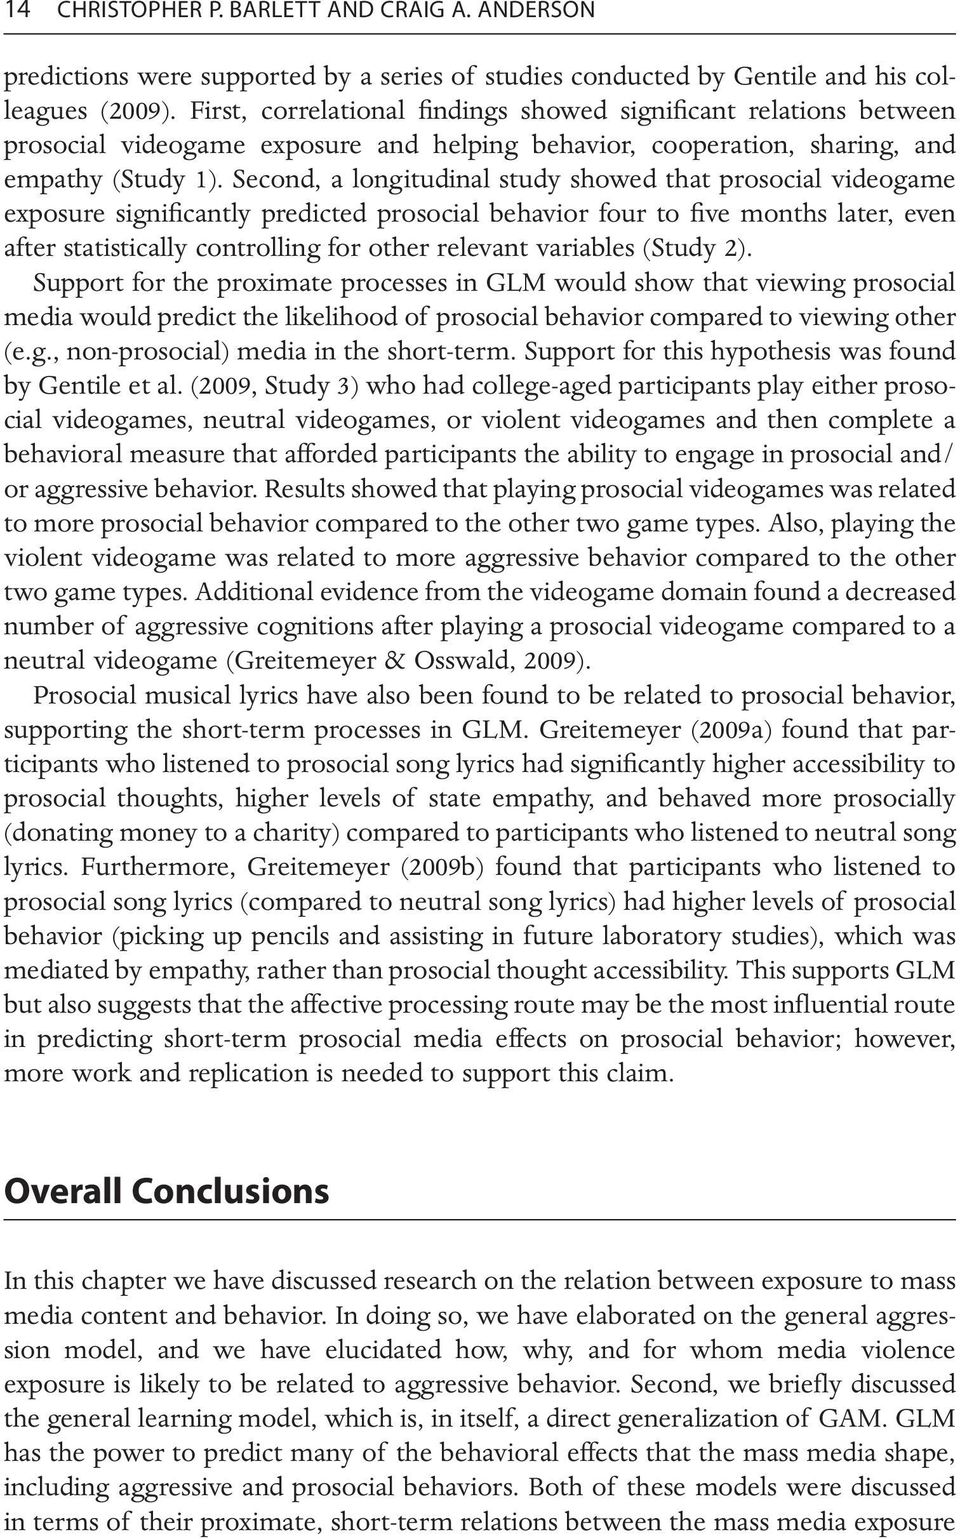 Second, a longitudinal study showed that prosocial videogame exposure significantly predicted prosocial behavior four to five months later, even after statistically controlling for other relevant